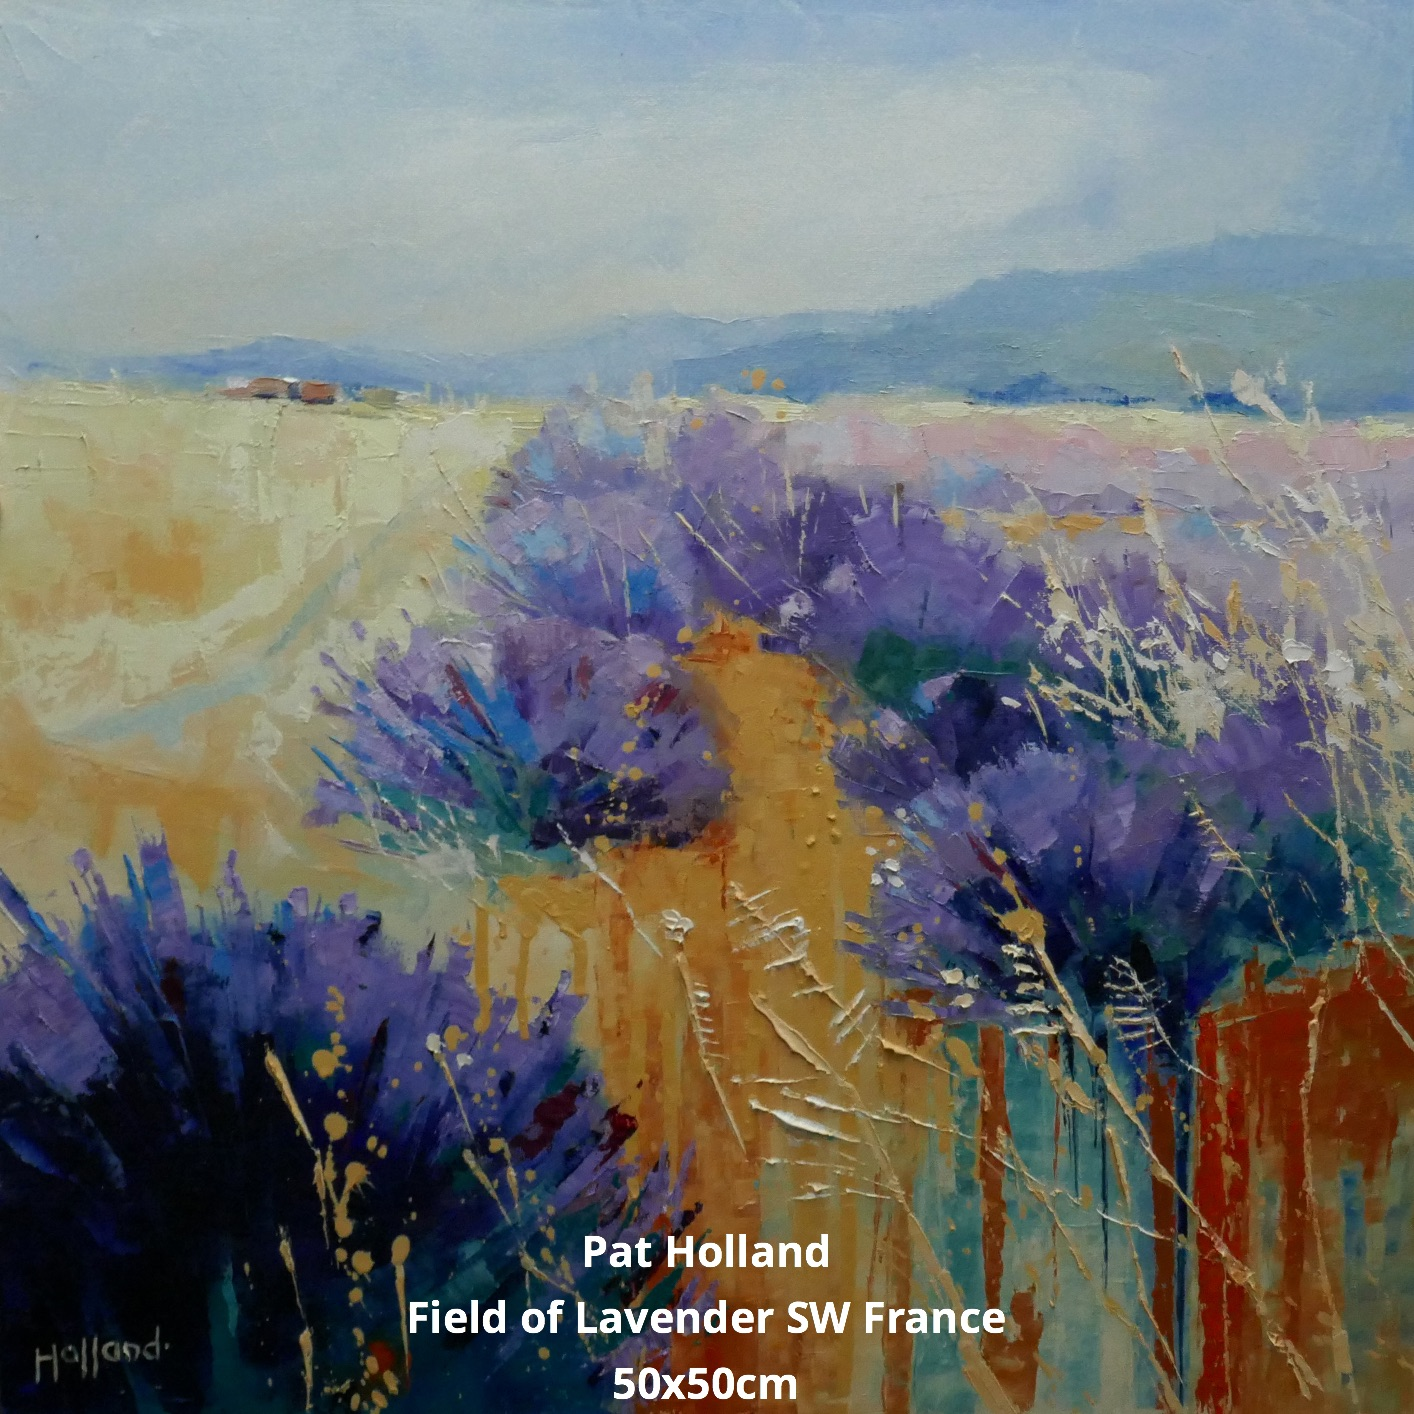 Field of Lavender SW France 50x50cm